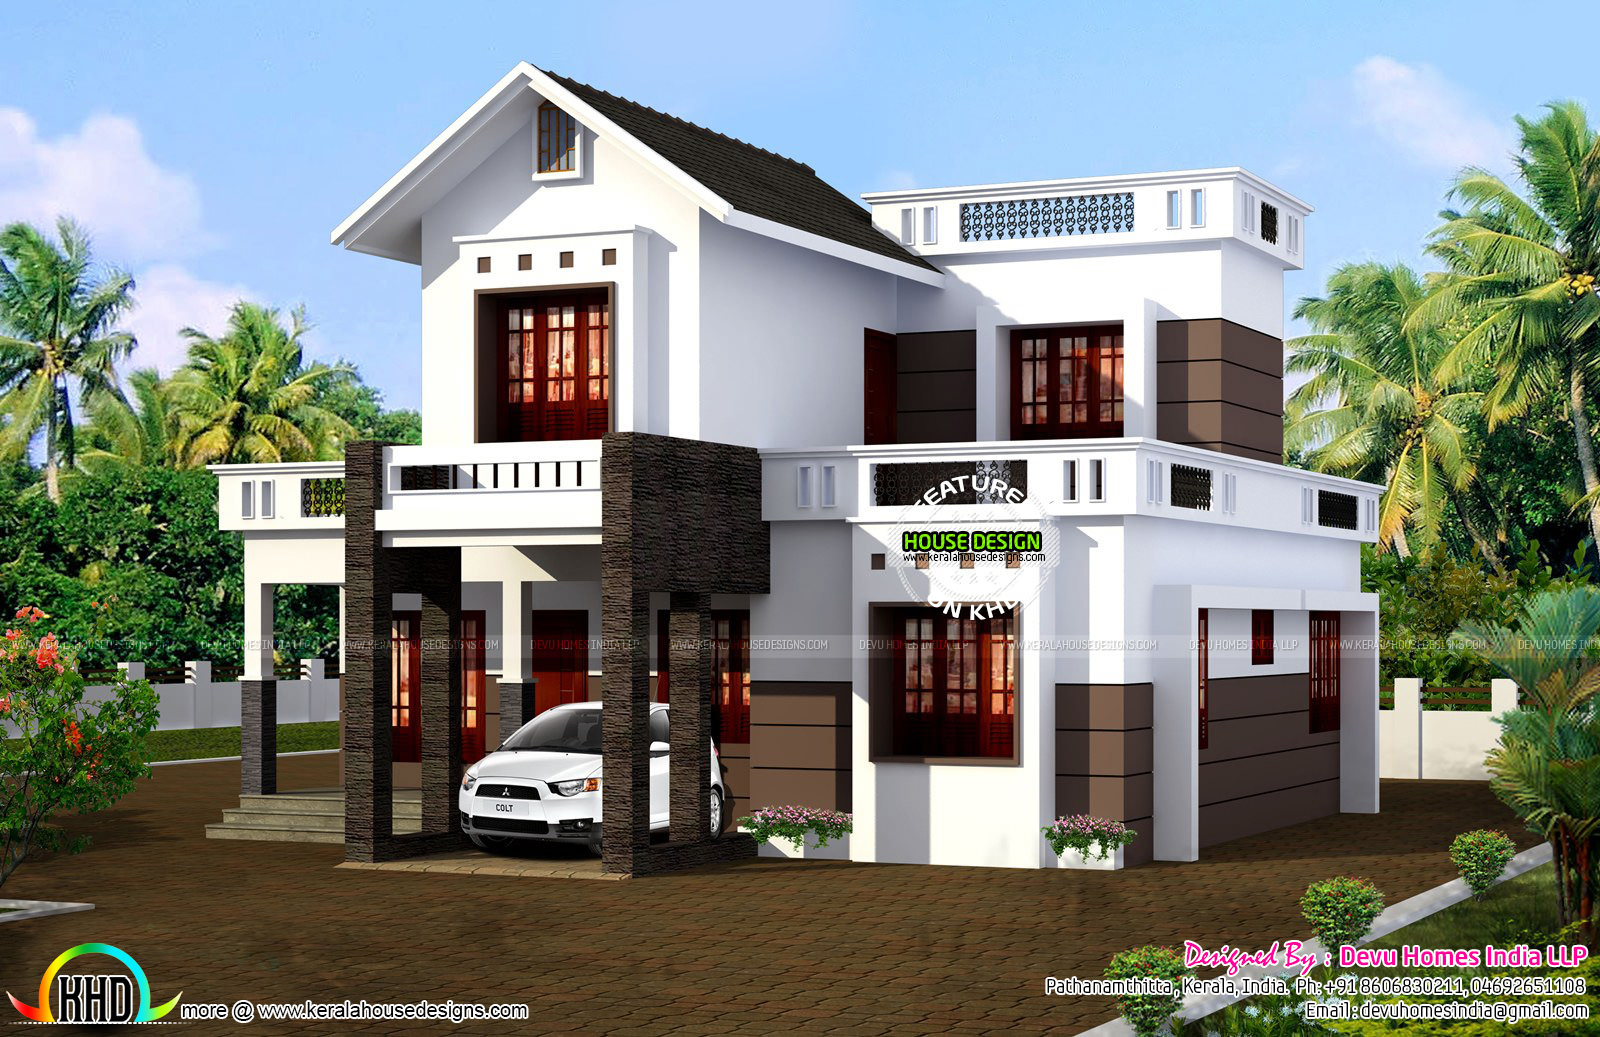 Simple 1524 sq ft house plan kerala home design and for Simple house plans india